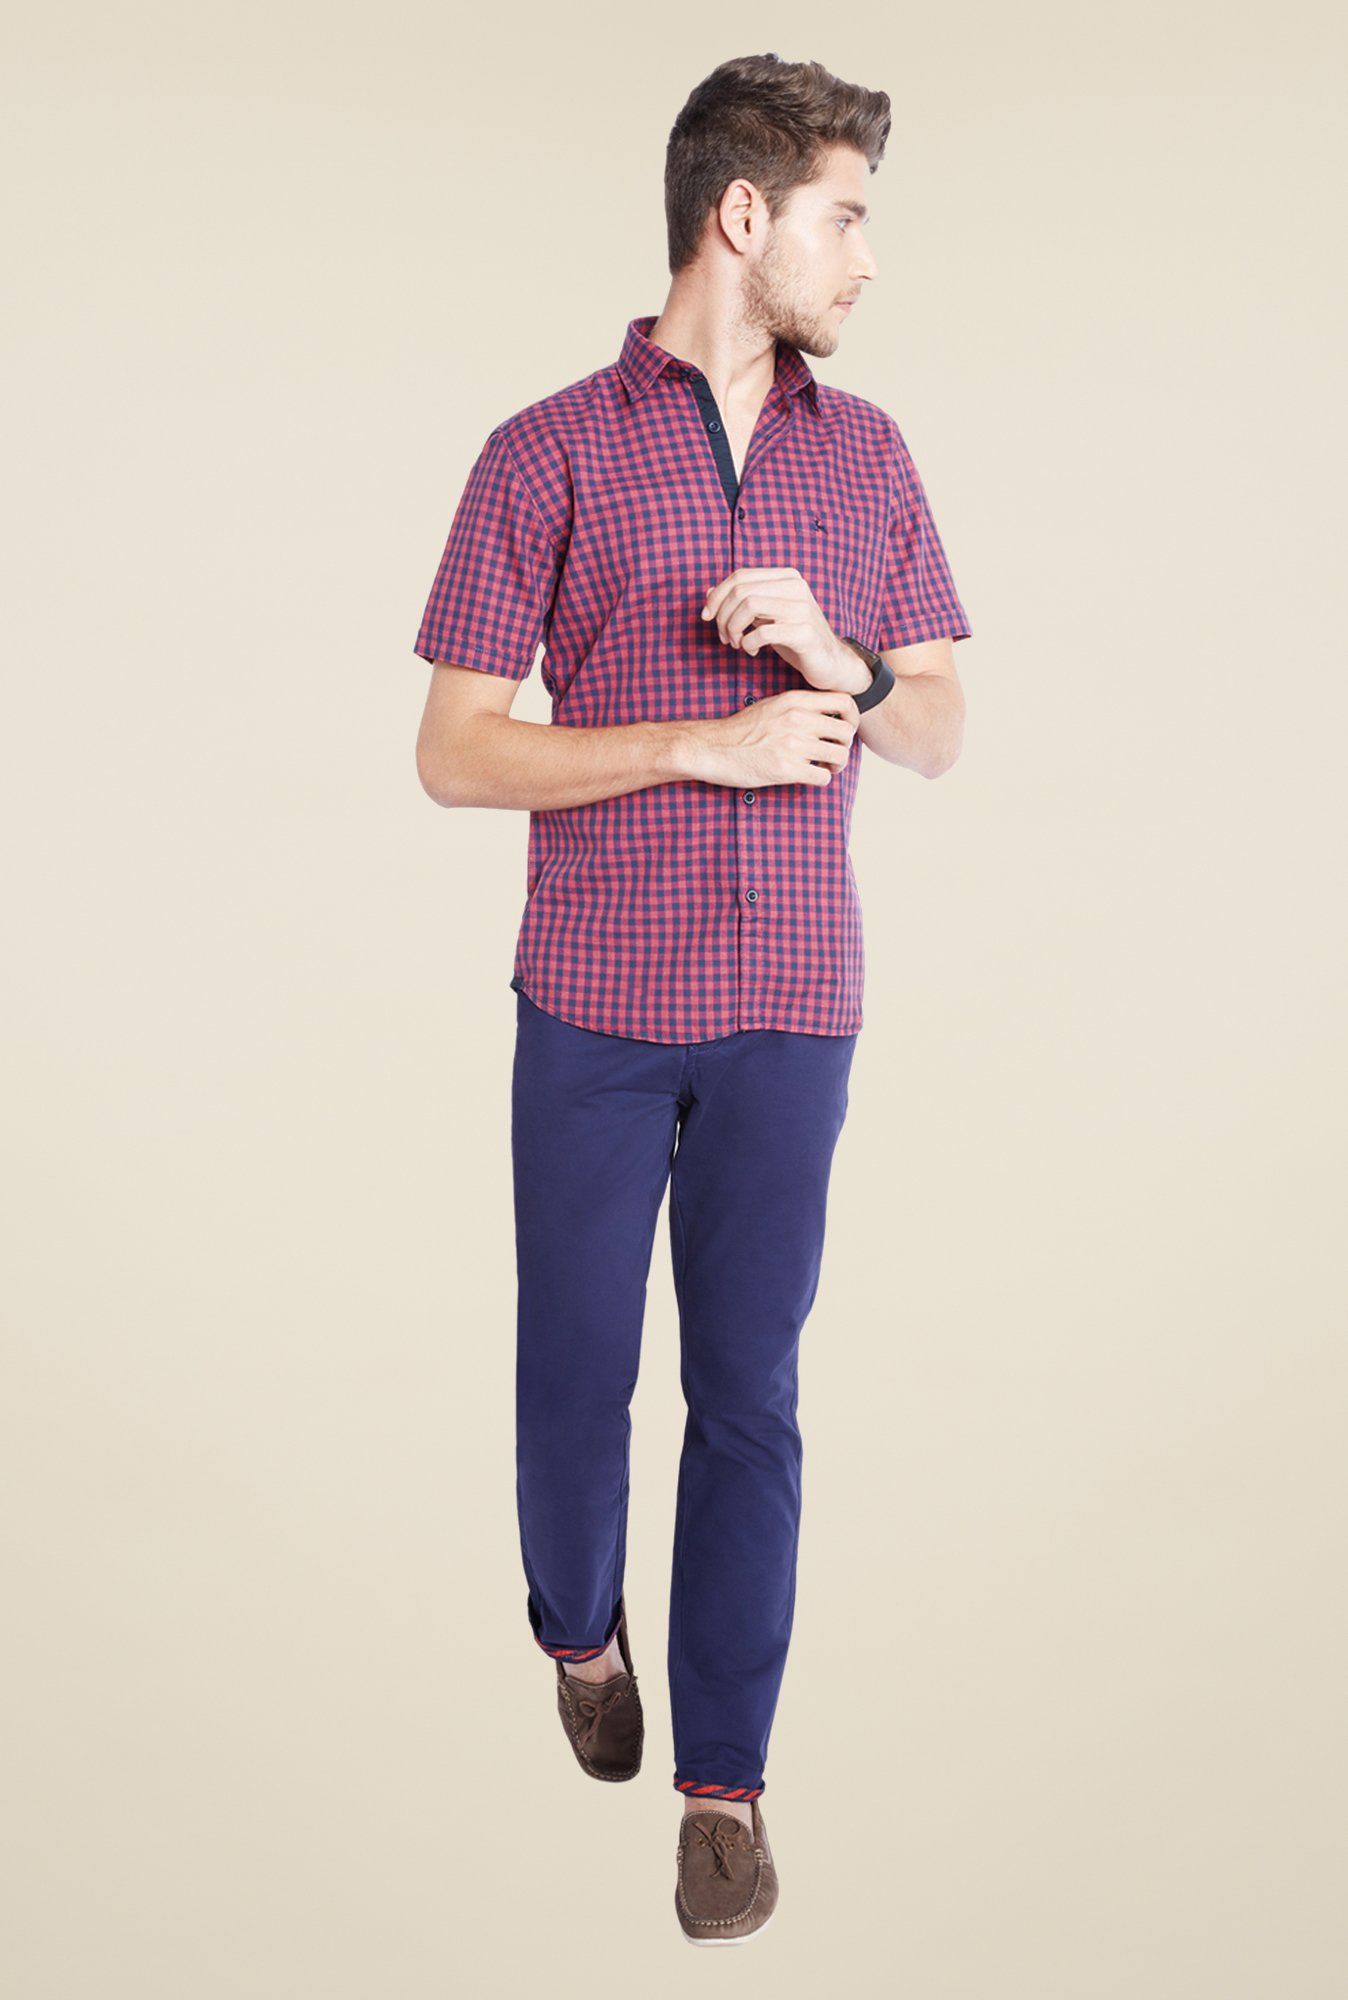 Parx Pink & Blue Checks Shirt